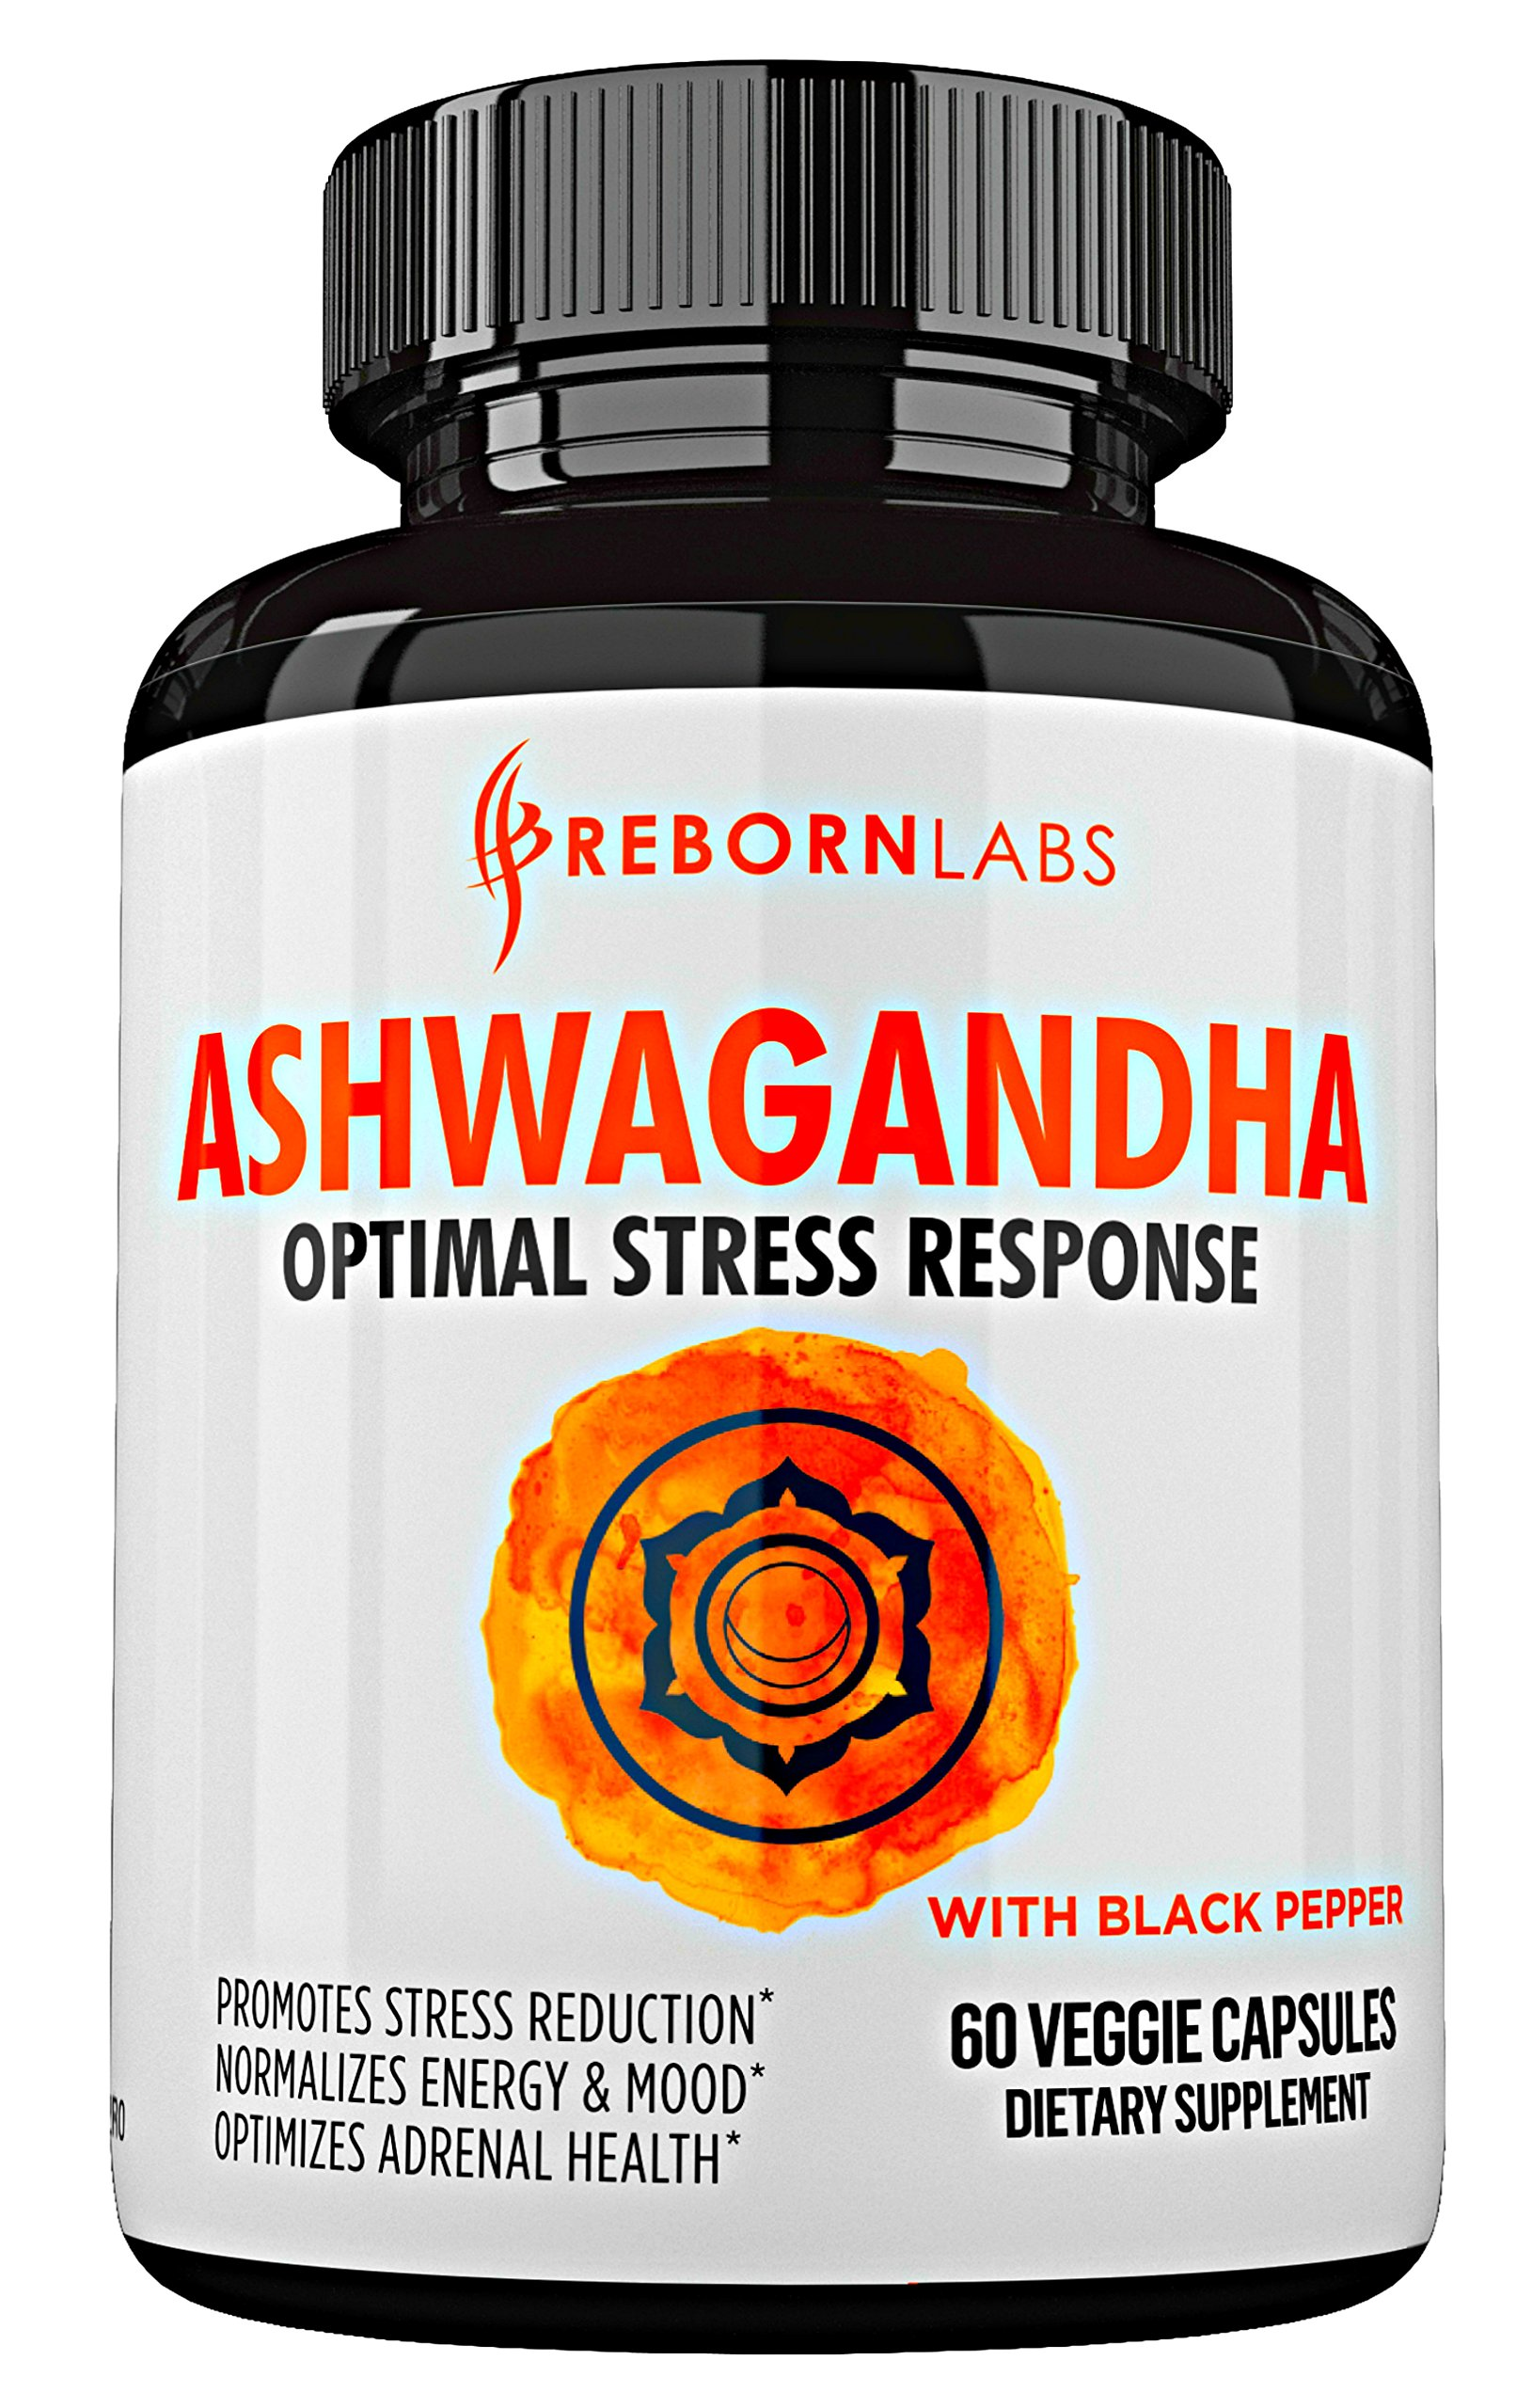 Ashwagandha Capsules 1300mg for Stress Relief, Thyroid Support, Anti Anxiety, Mood & Adrenal Support | 60 Veggie Capsules | with Black Pepper Extract | Extra Strength Root Powder Supplement by Reborn Labs